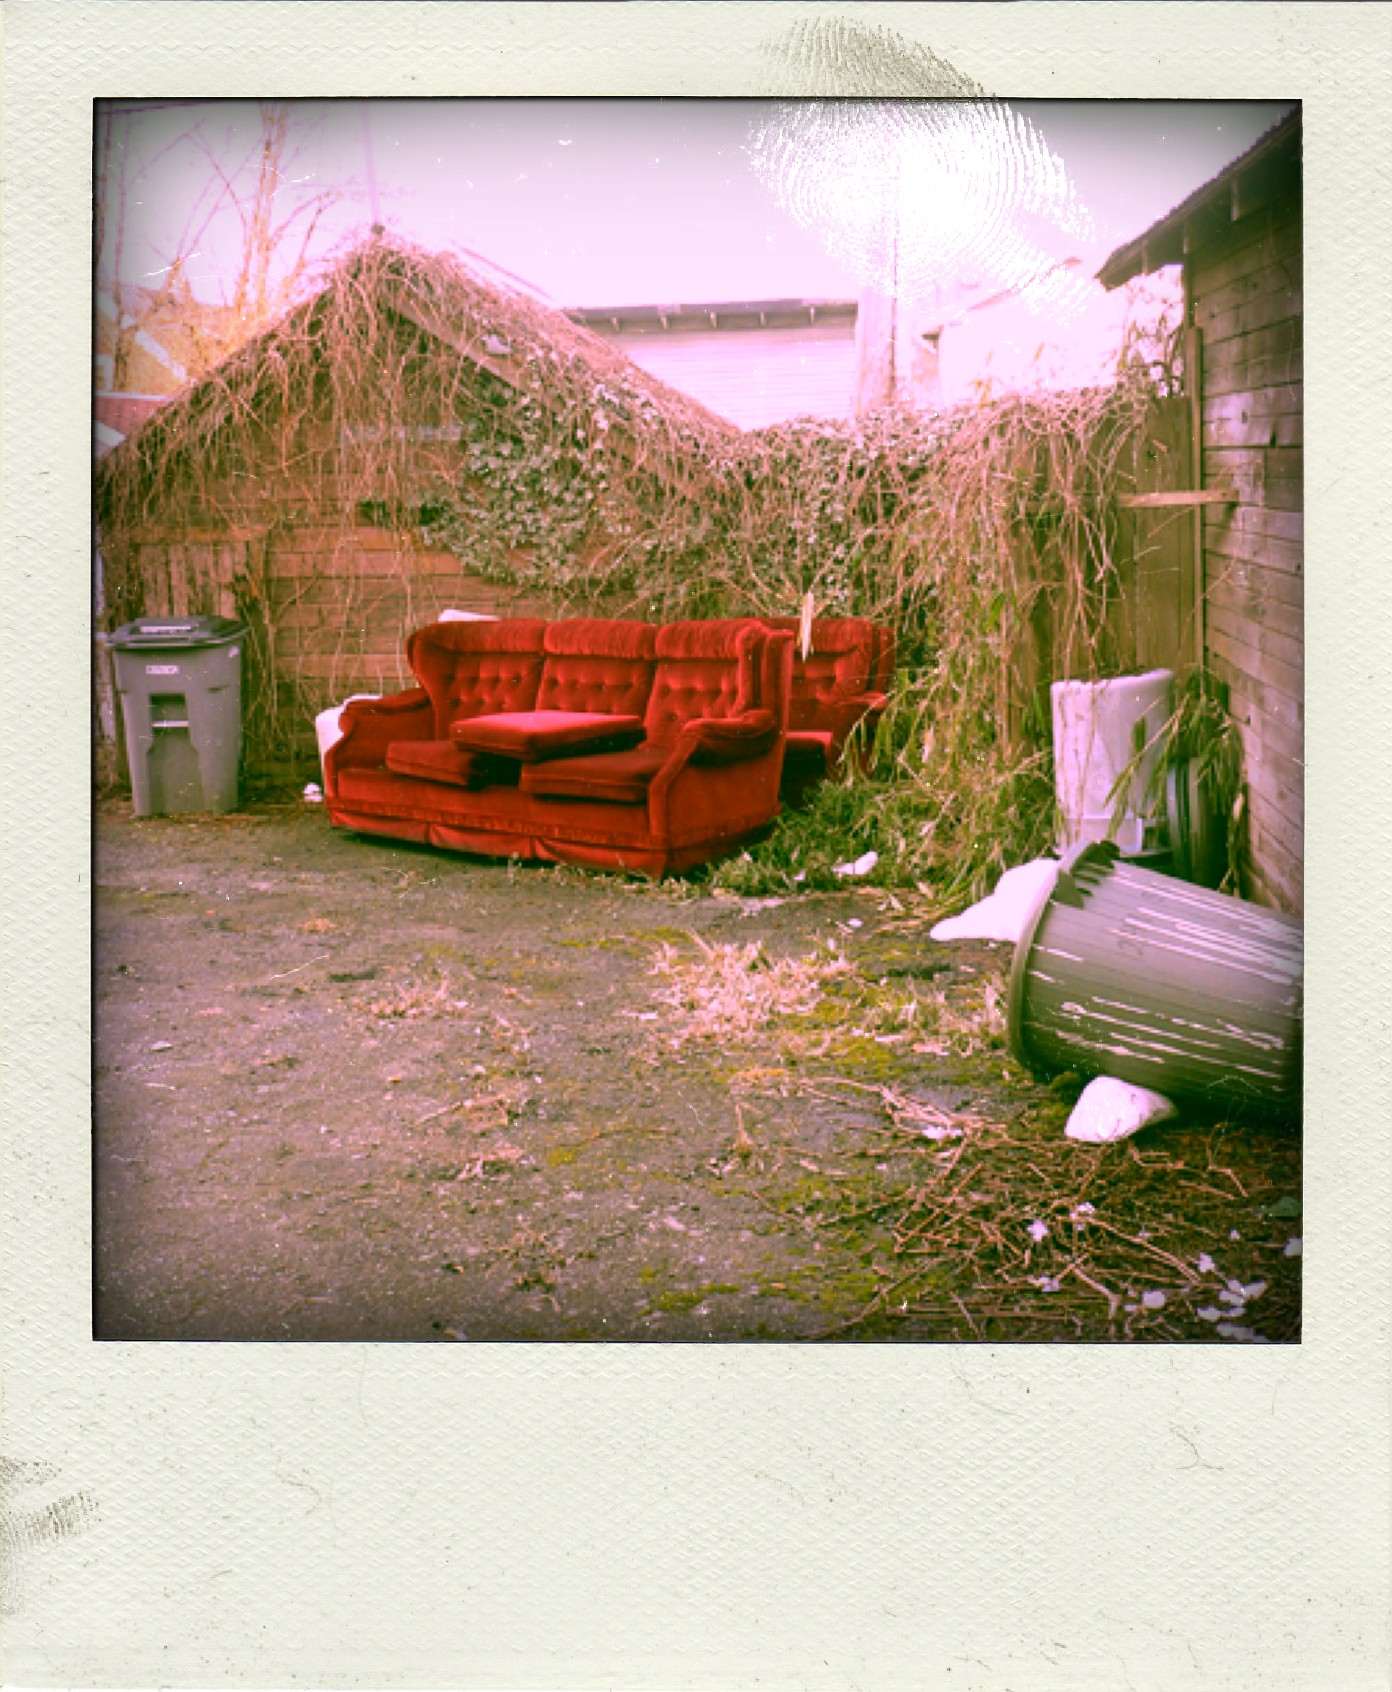 couch-pola02